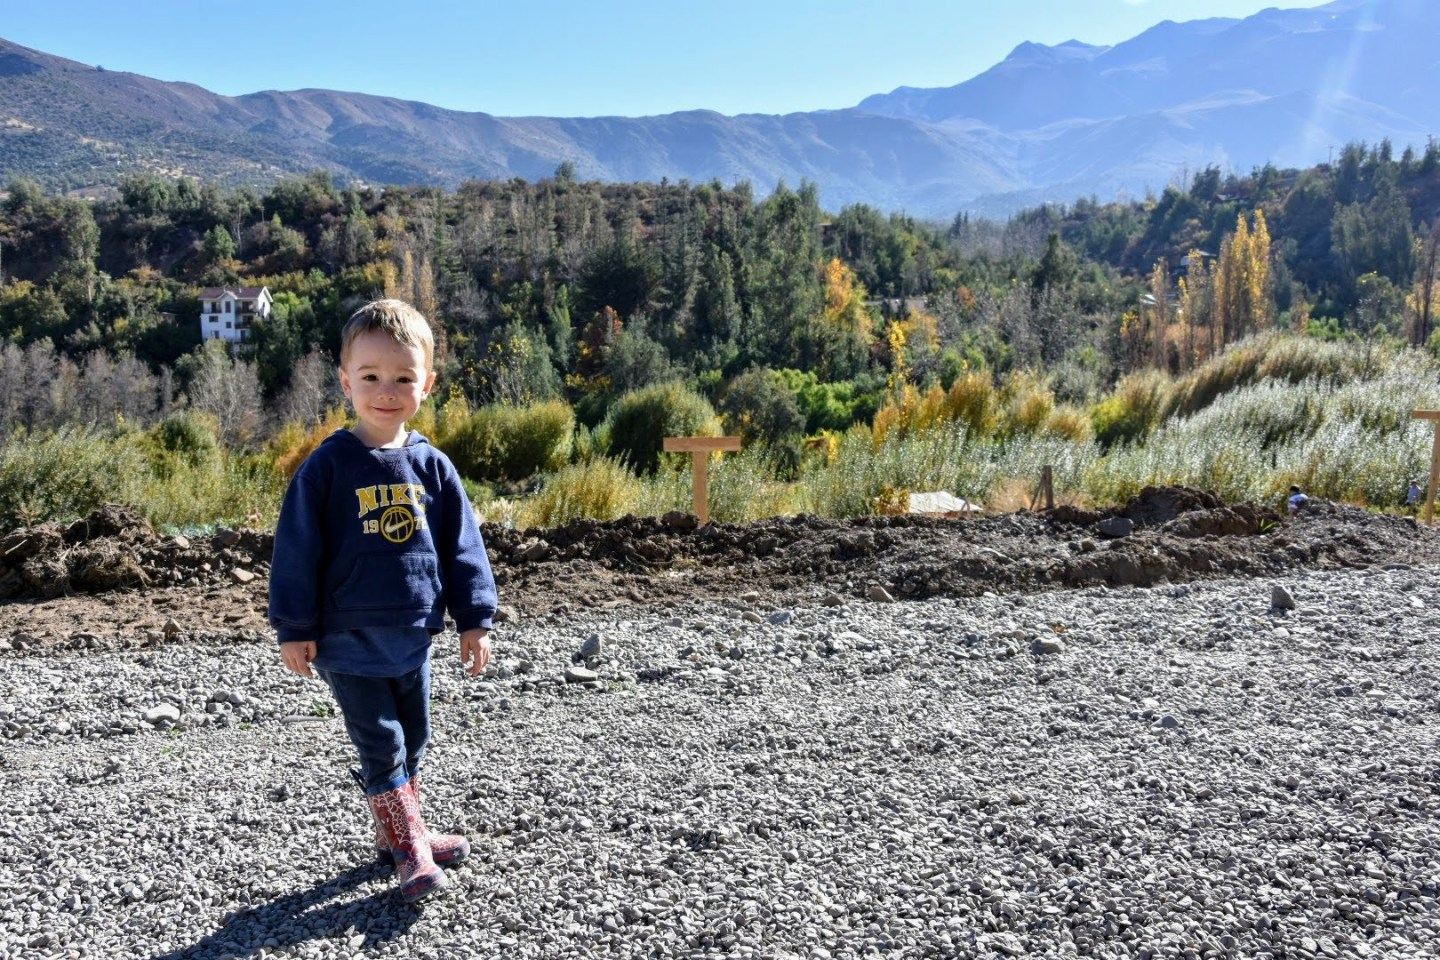 family friendly resort 90 minutes from Santiago